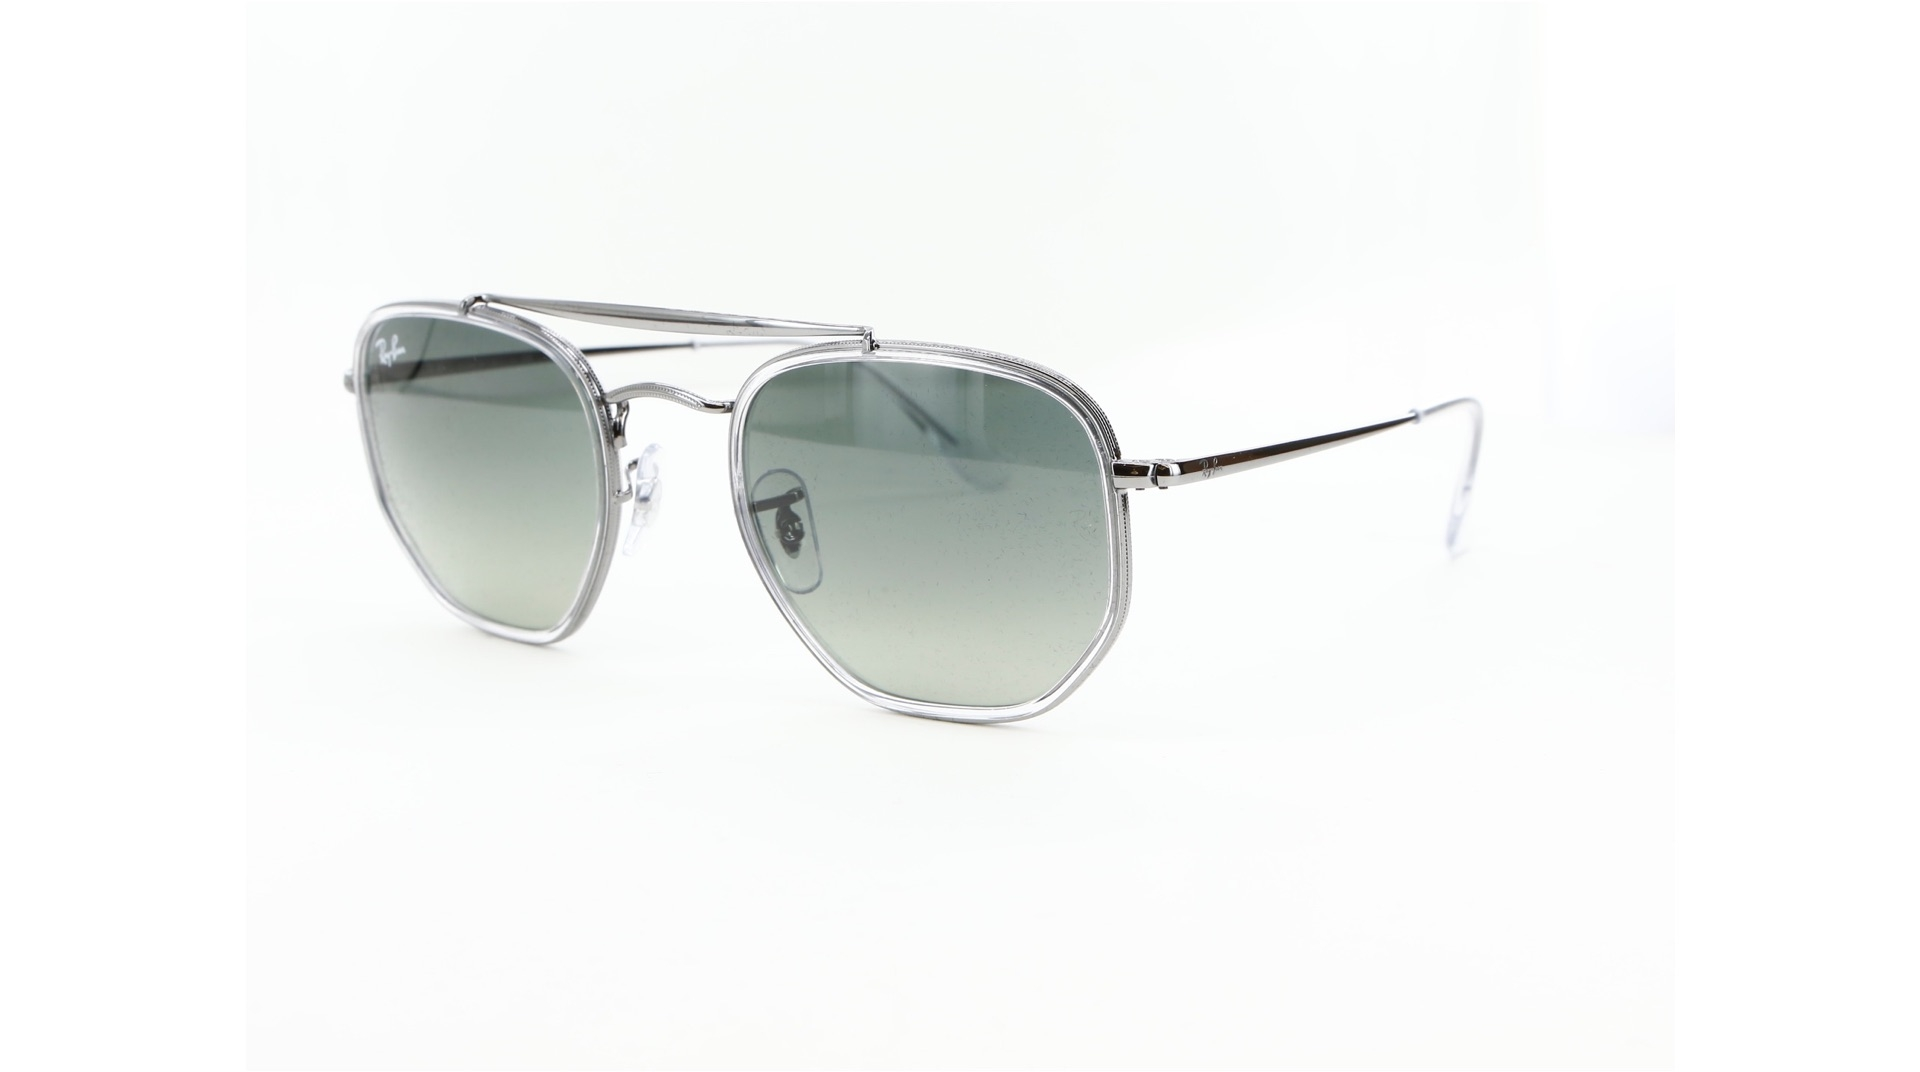 Ray-Ban - ref: 82020